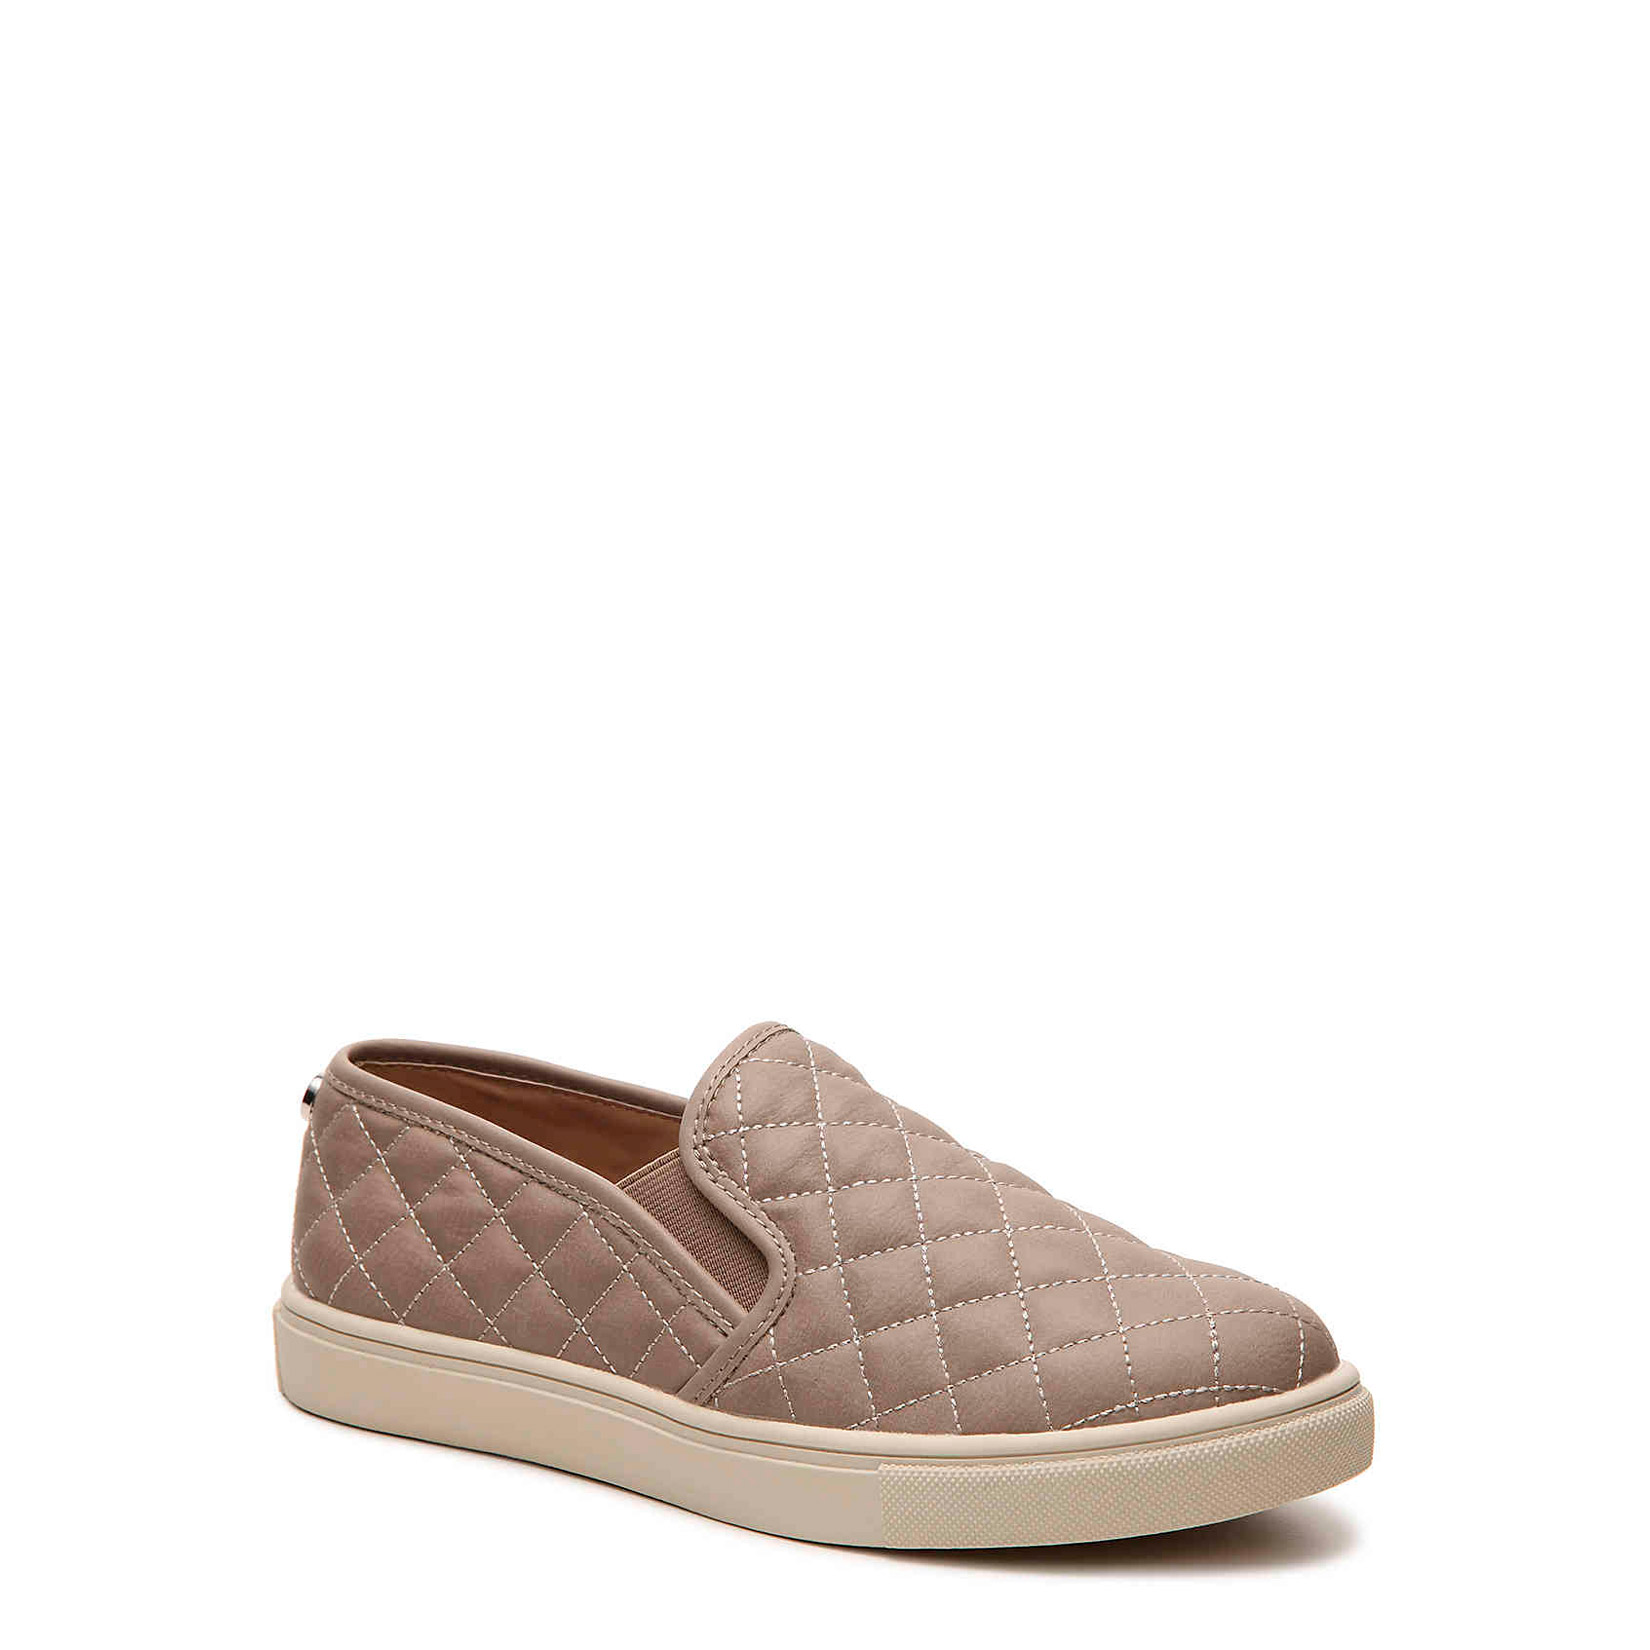 Steve Madden Ecentrq Women S Slip On Sneaker Vevey Shoes